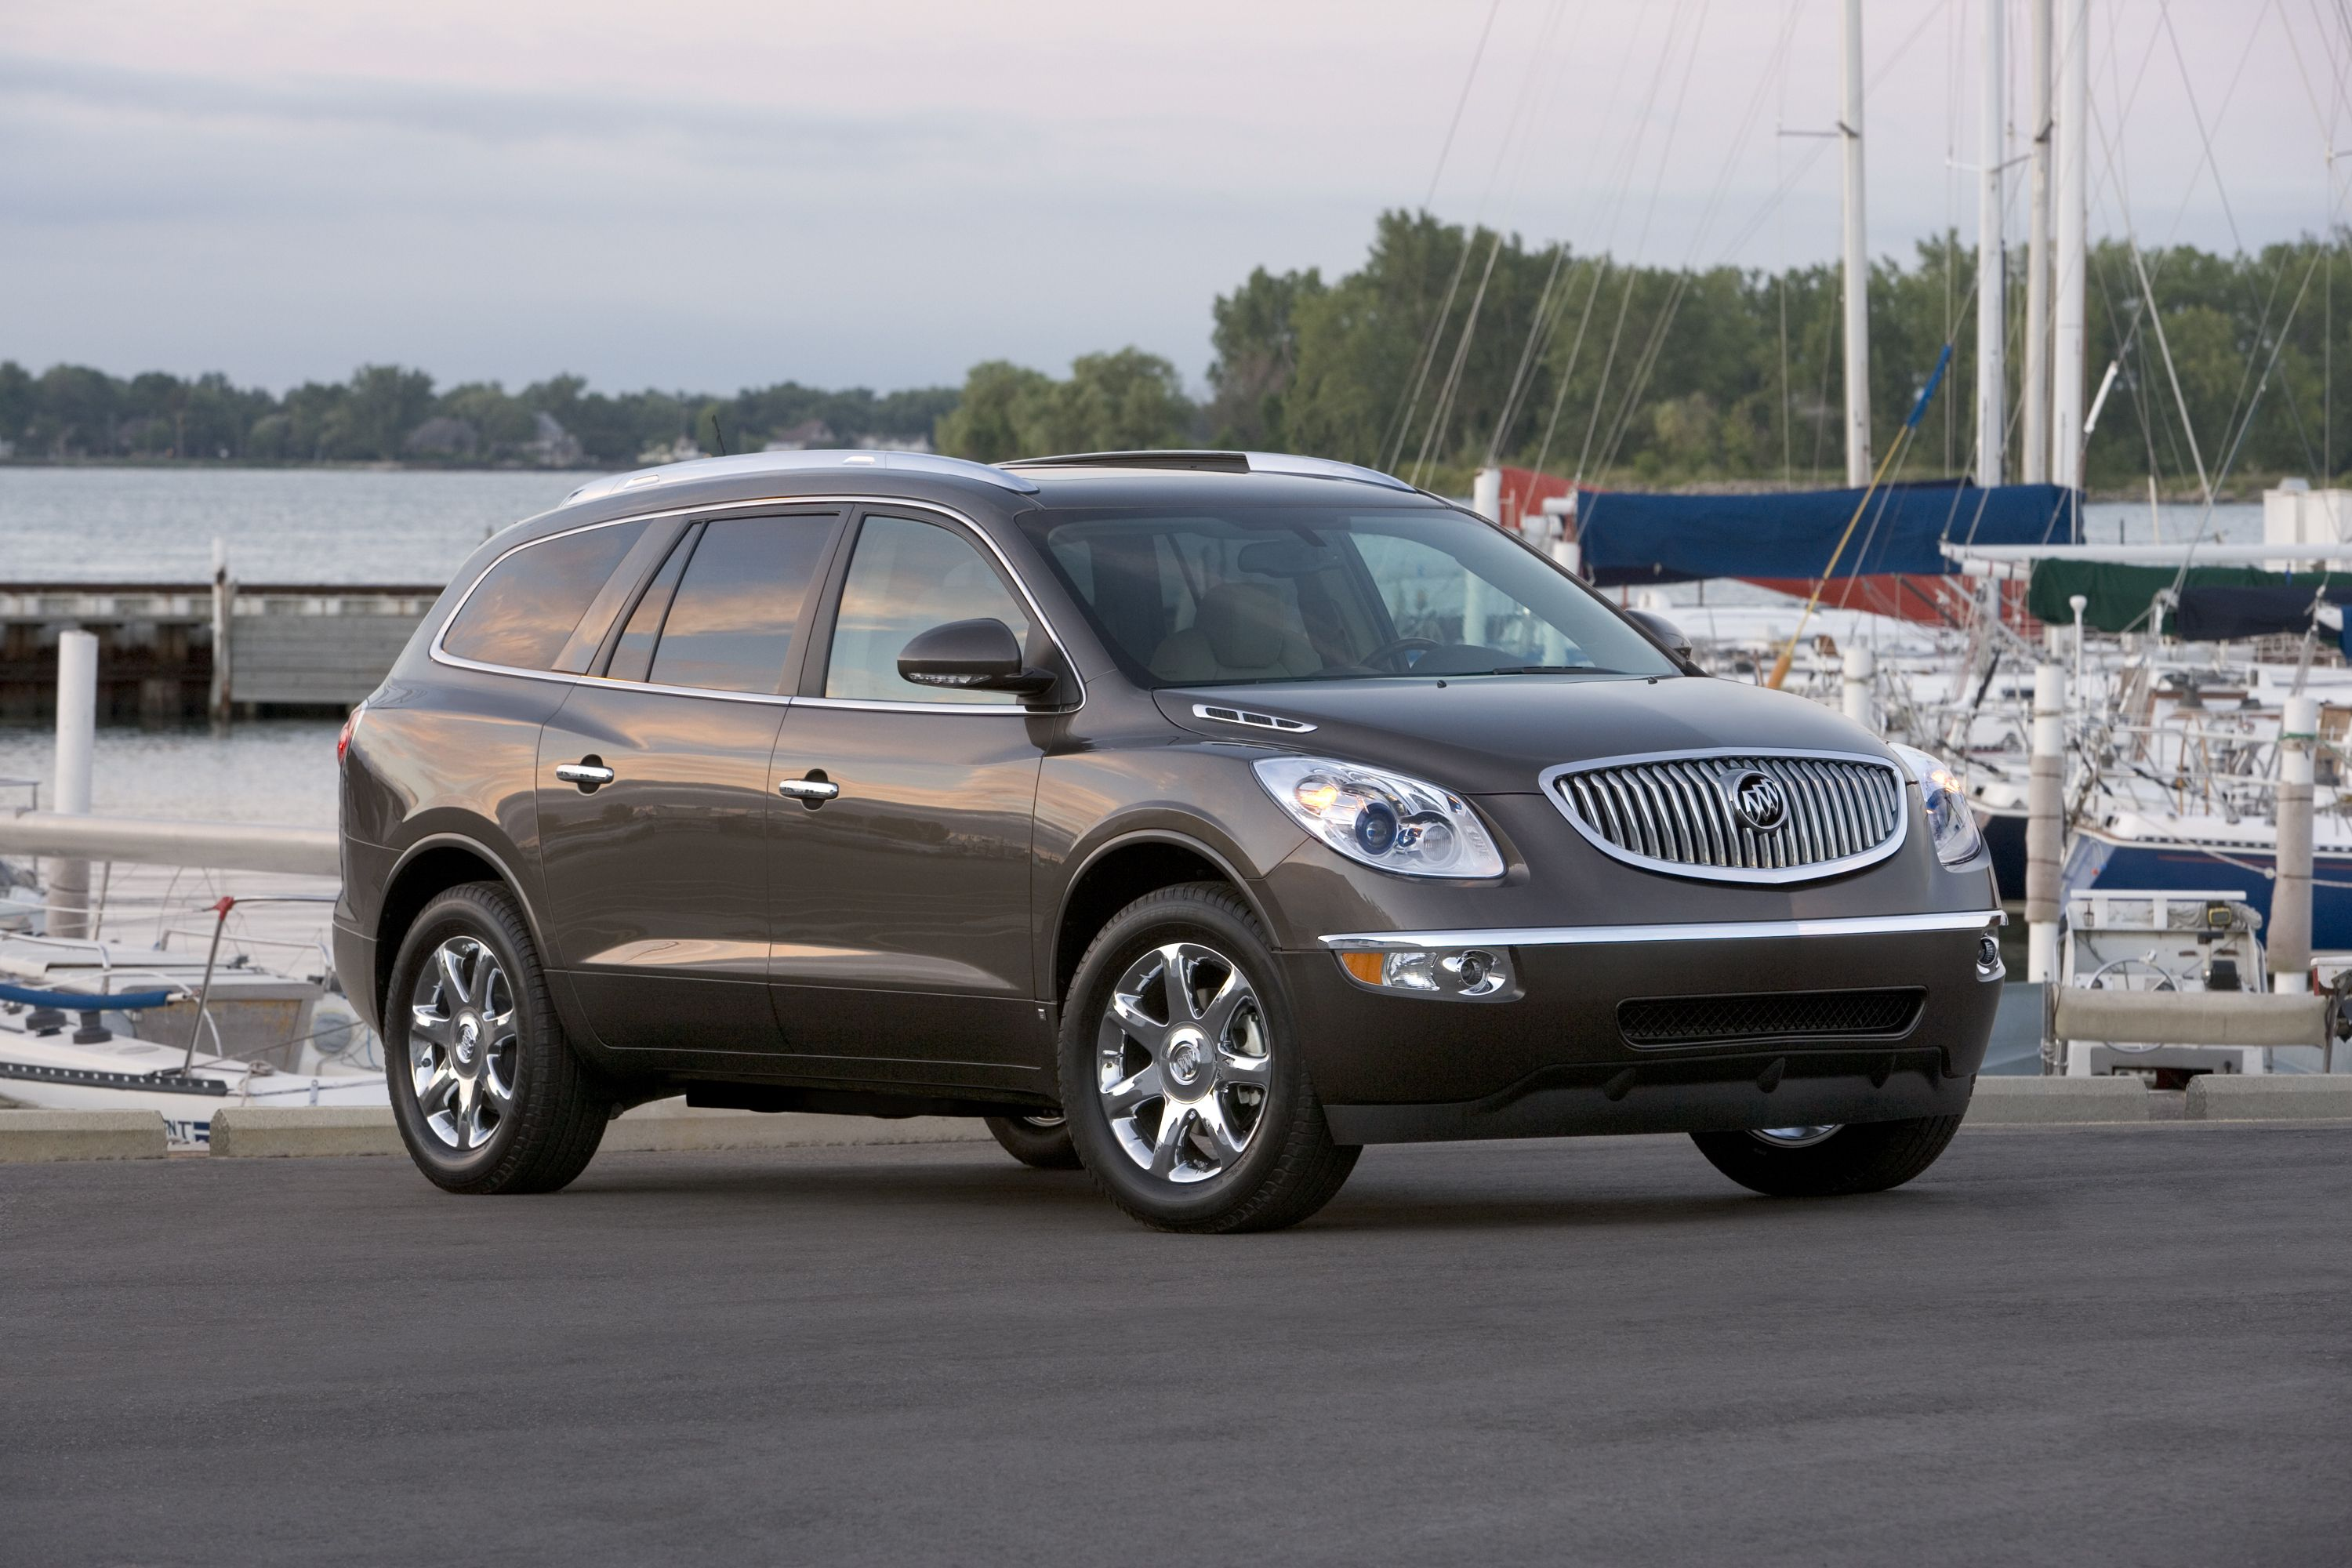 2009 Enclave Brown Google Search Buick Enclave Buick Buick Gmc